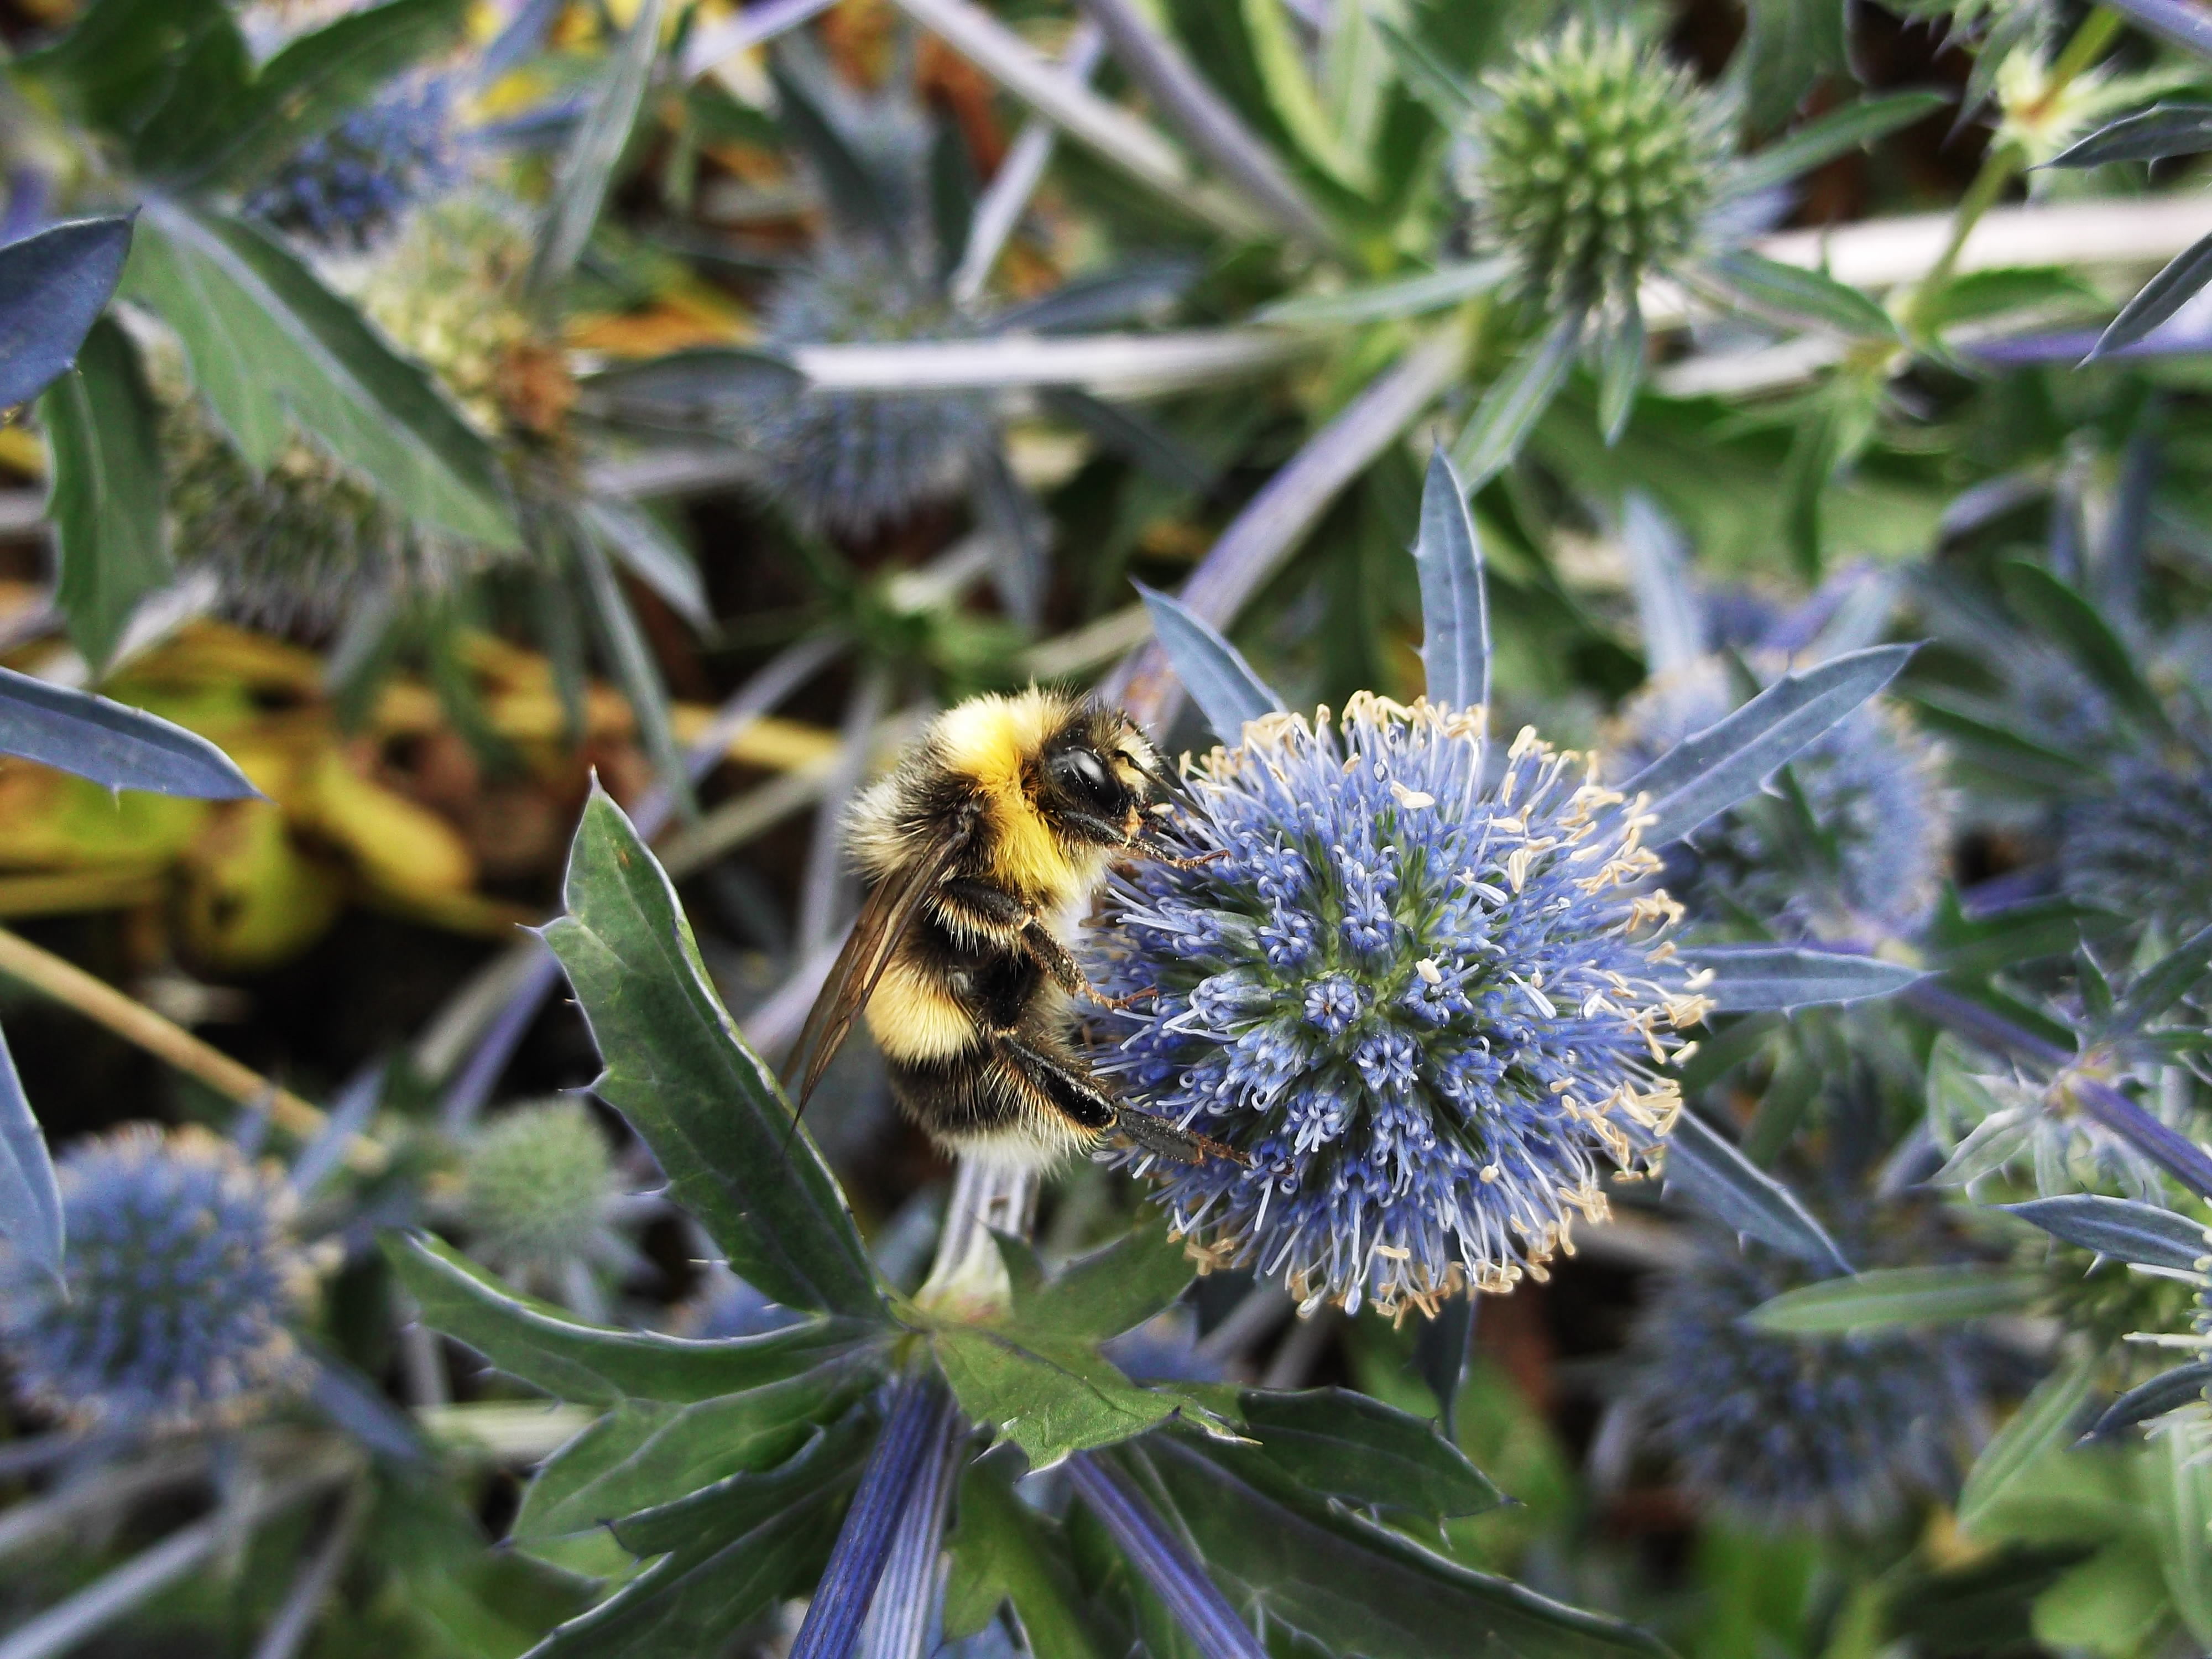 Cities could play key role in pollinator conservation